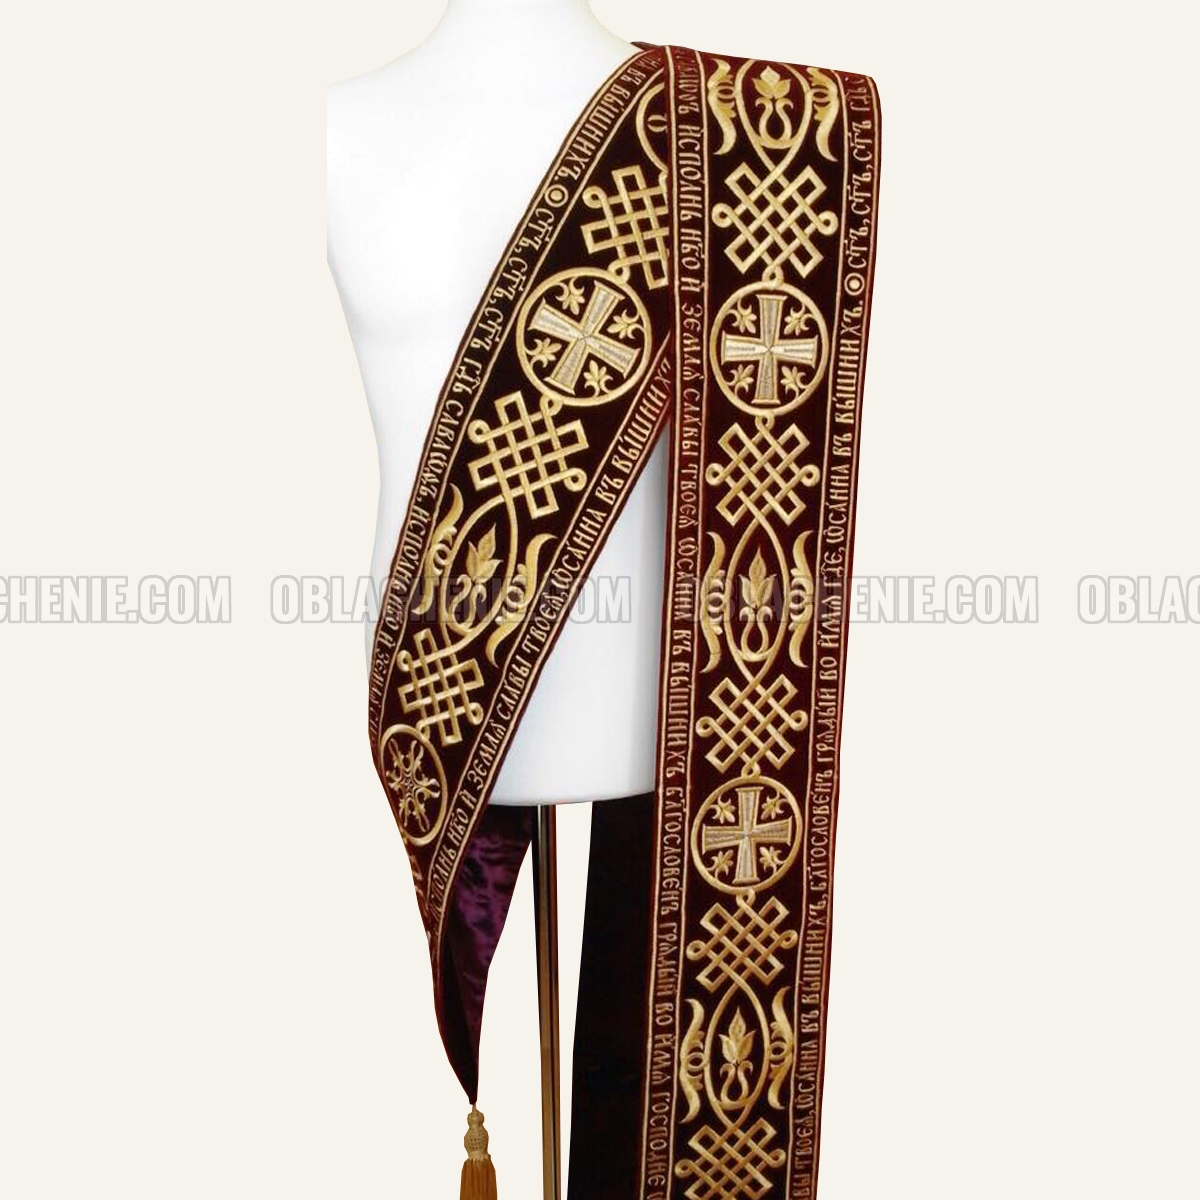 Embroidered orarion 10307